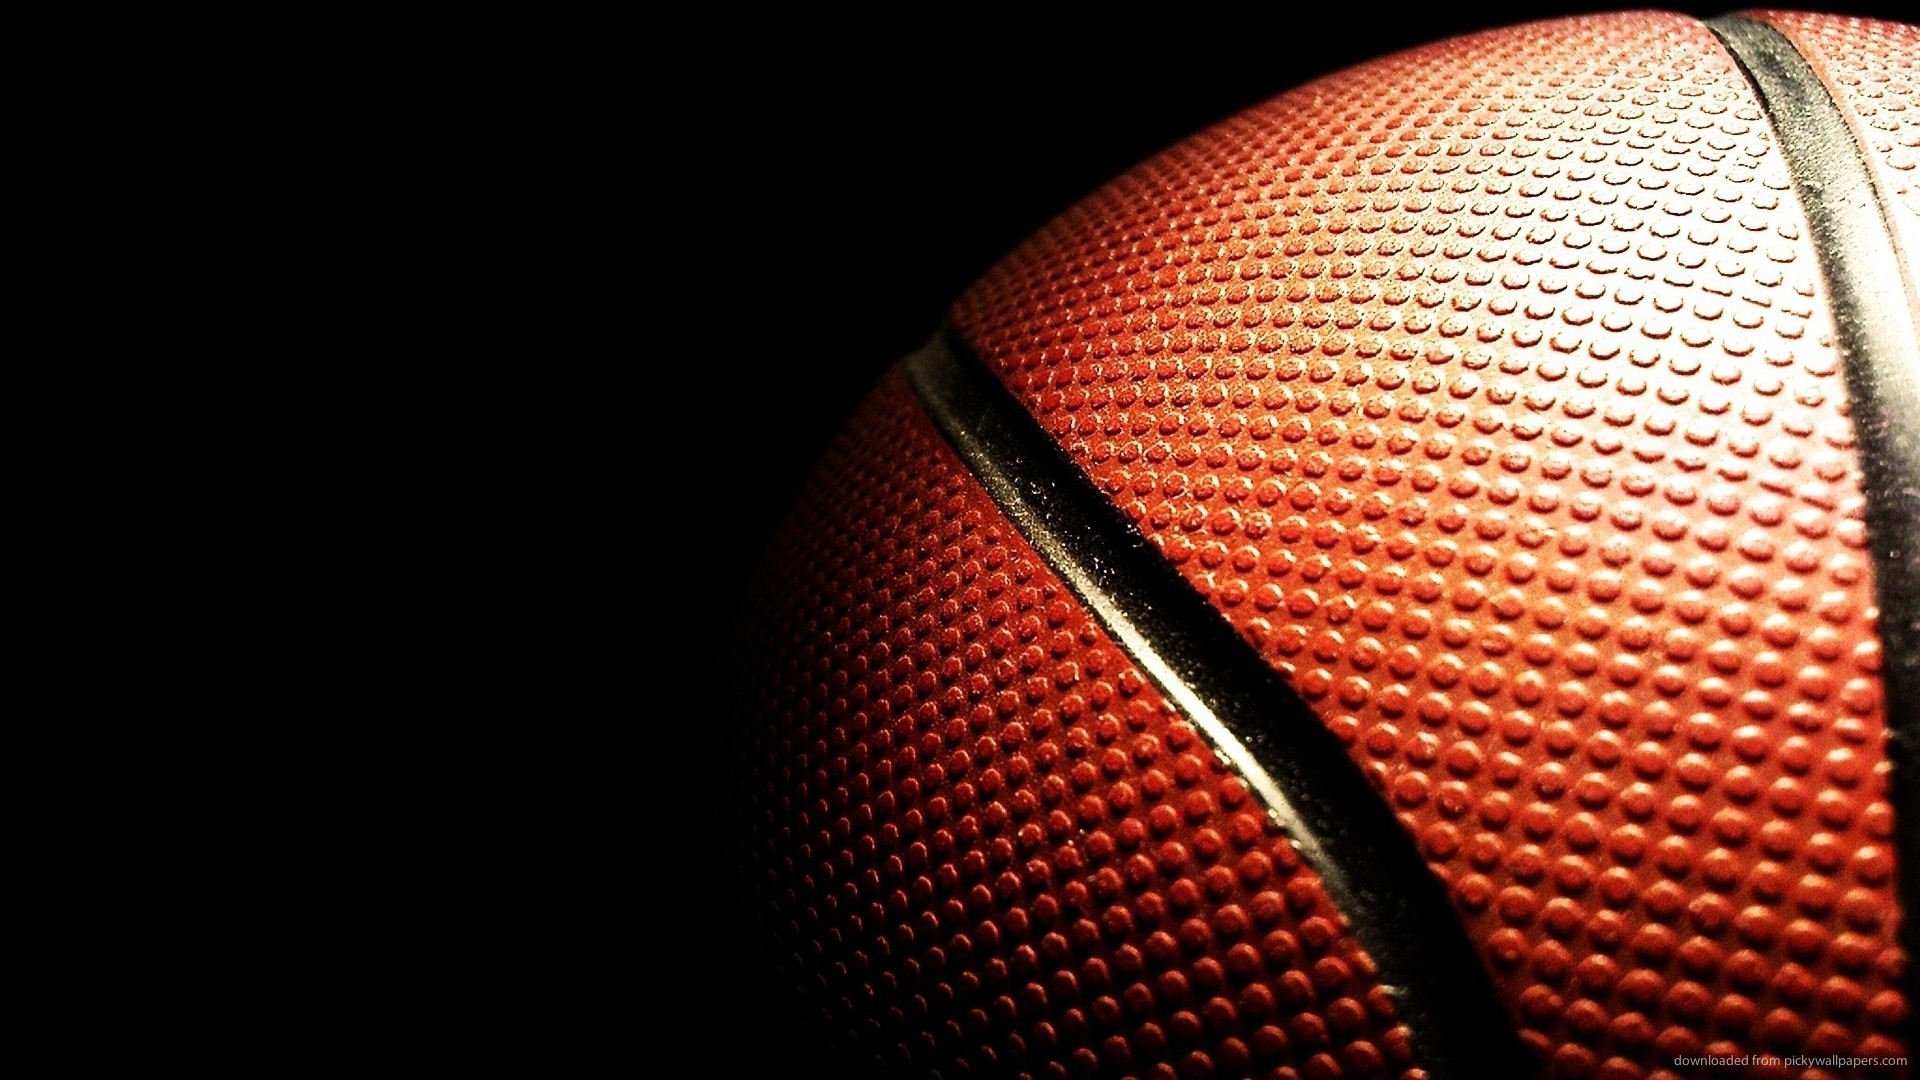 wallpapers hd basketball wallpapers hd basketball wallpapers hd 1920x1080